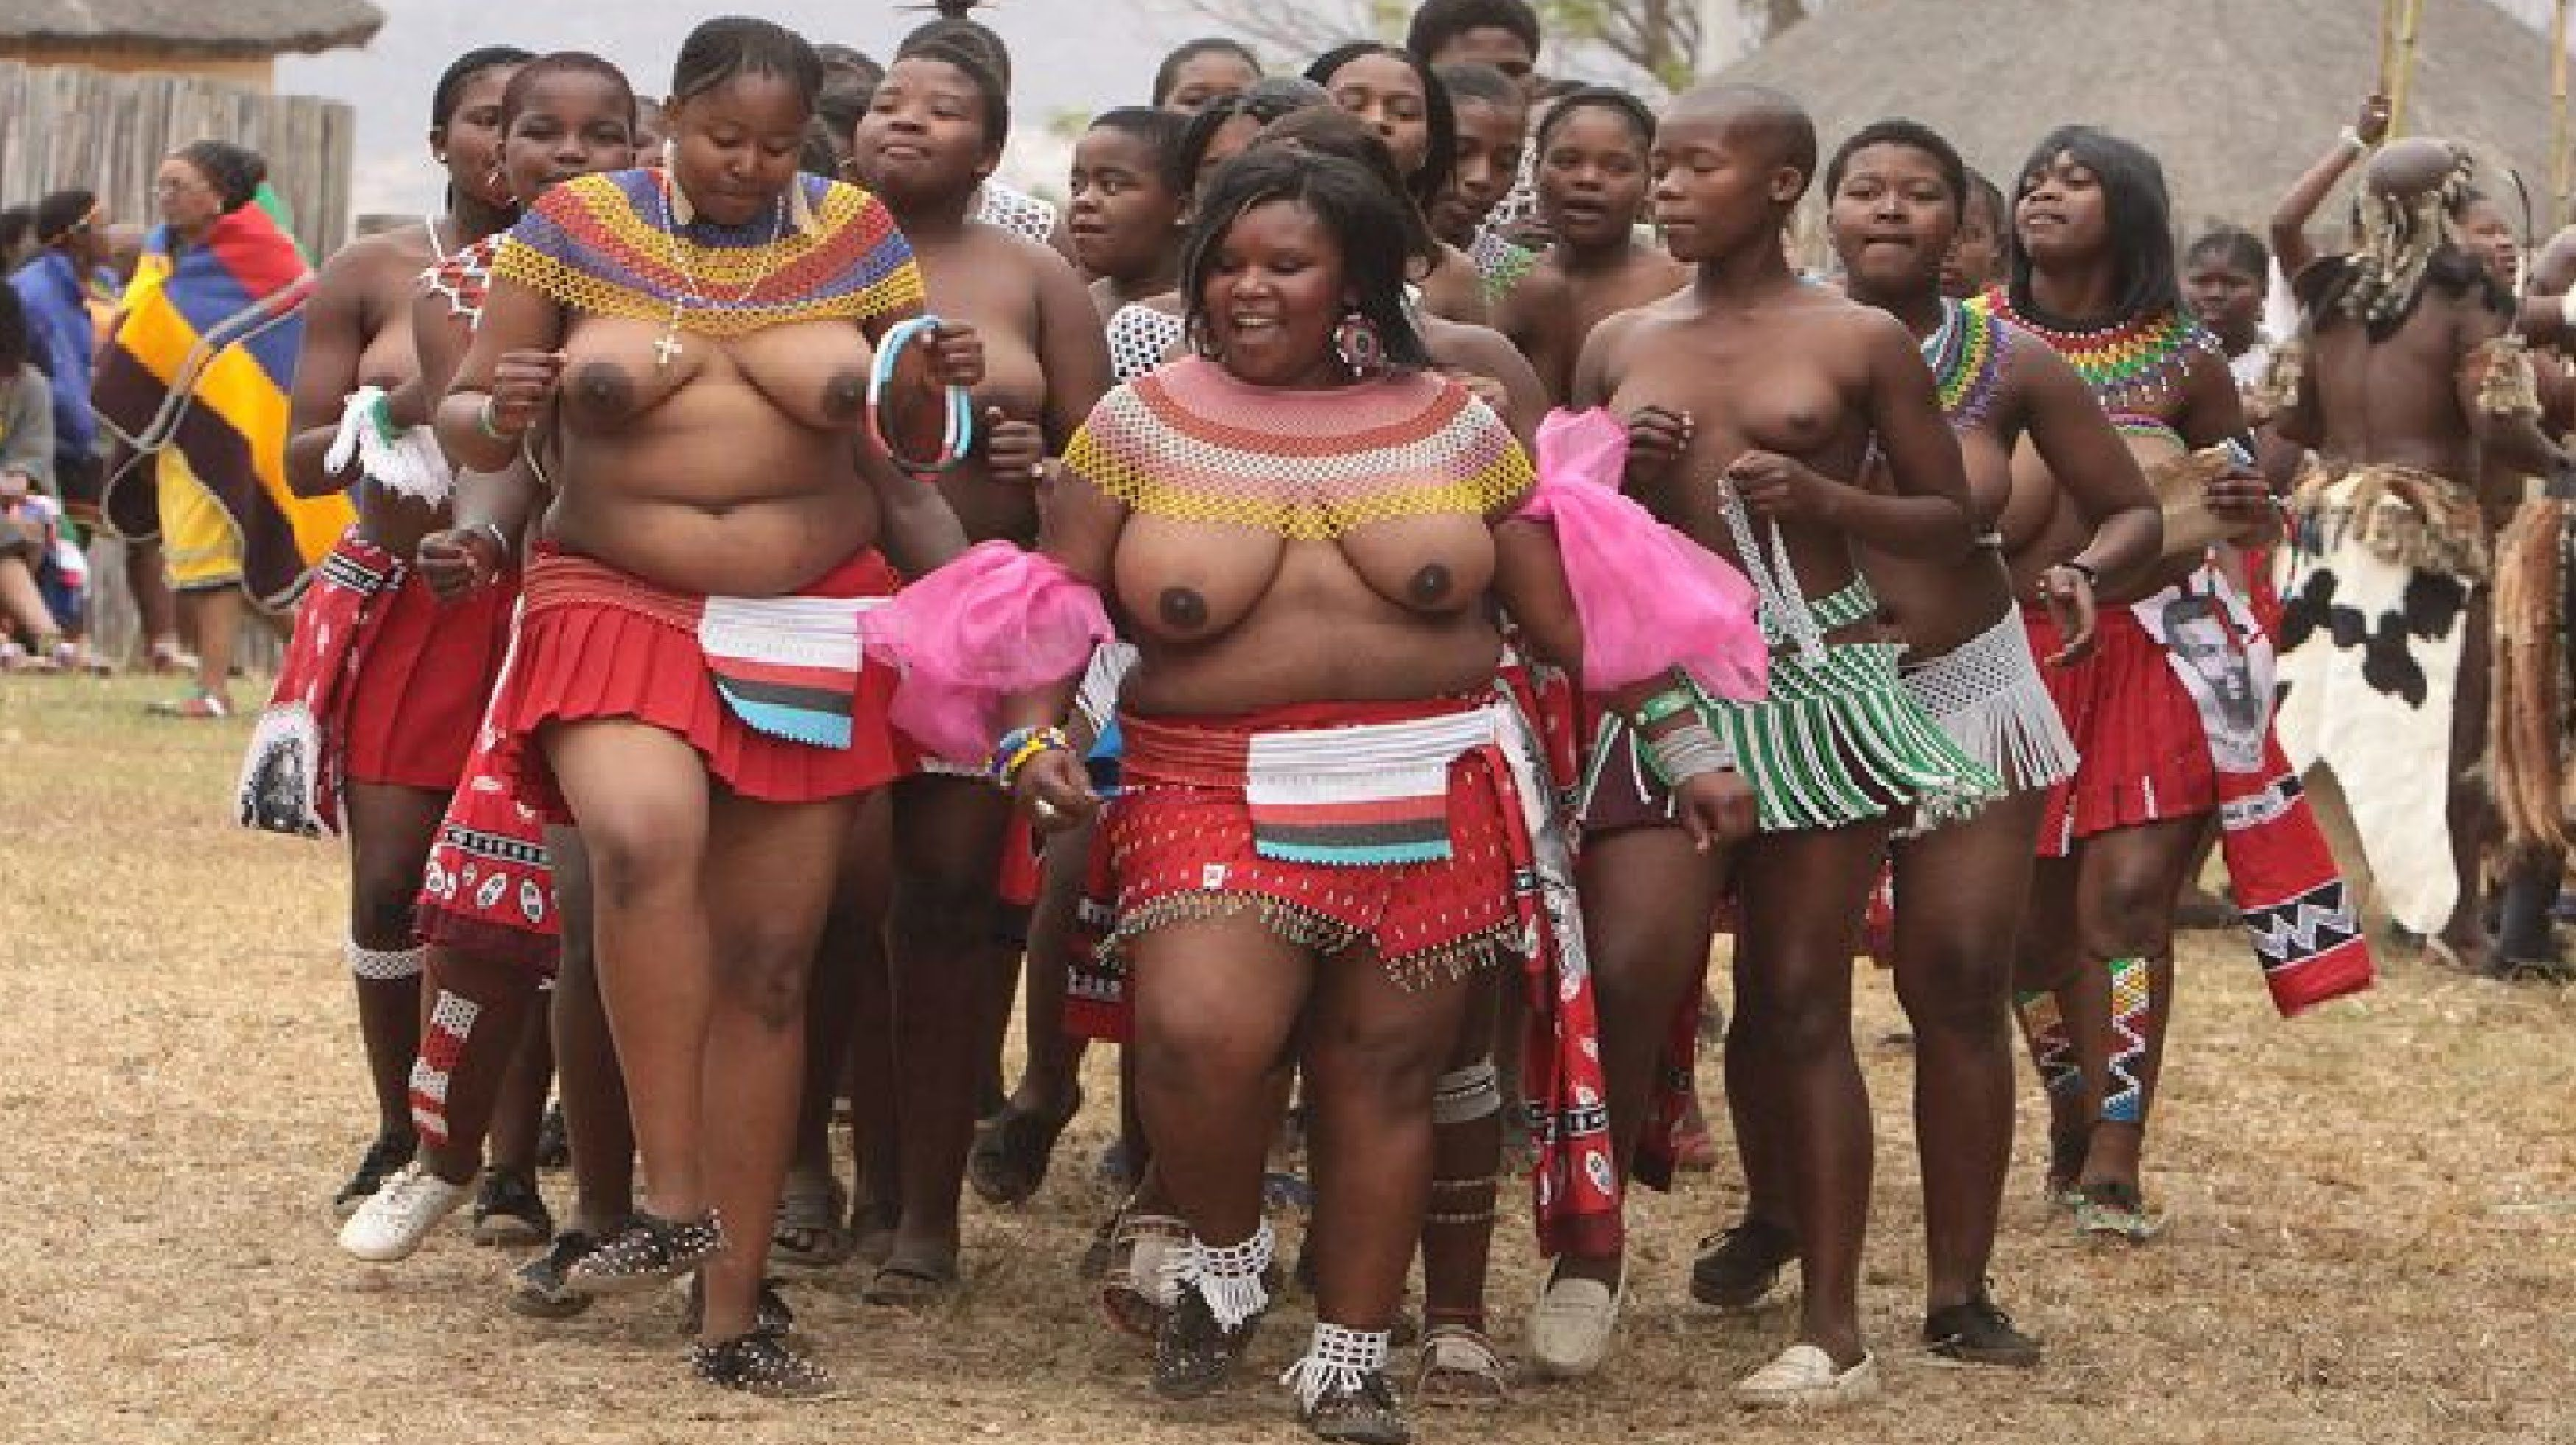 zulu girls dance nude